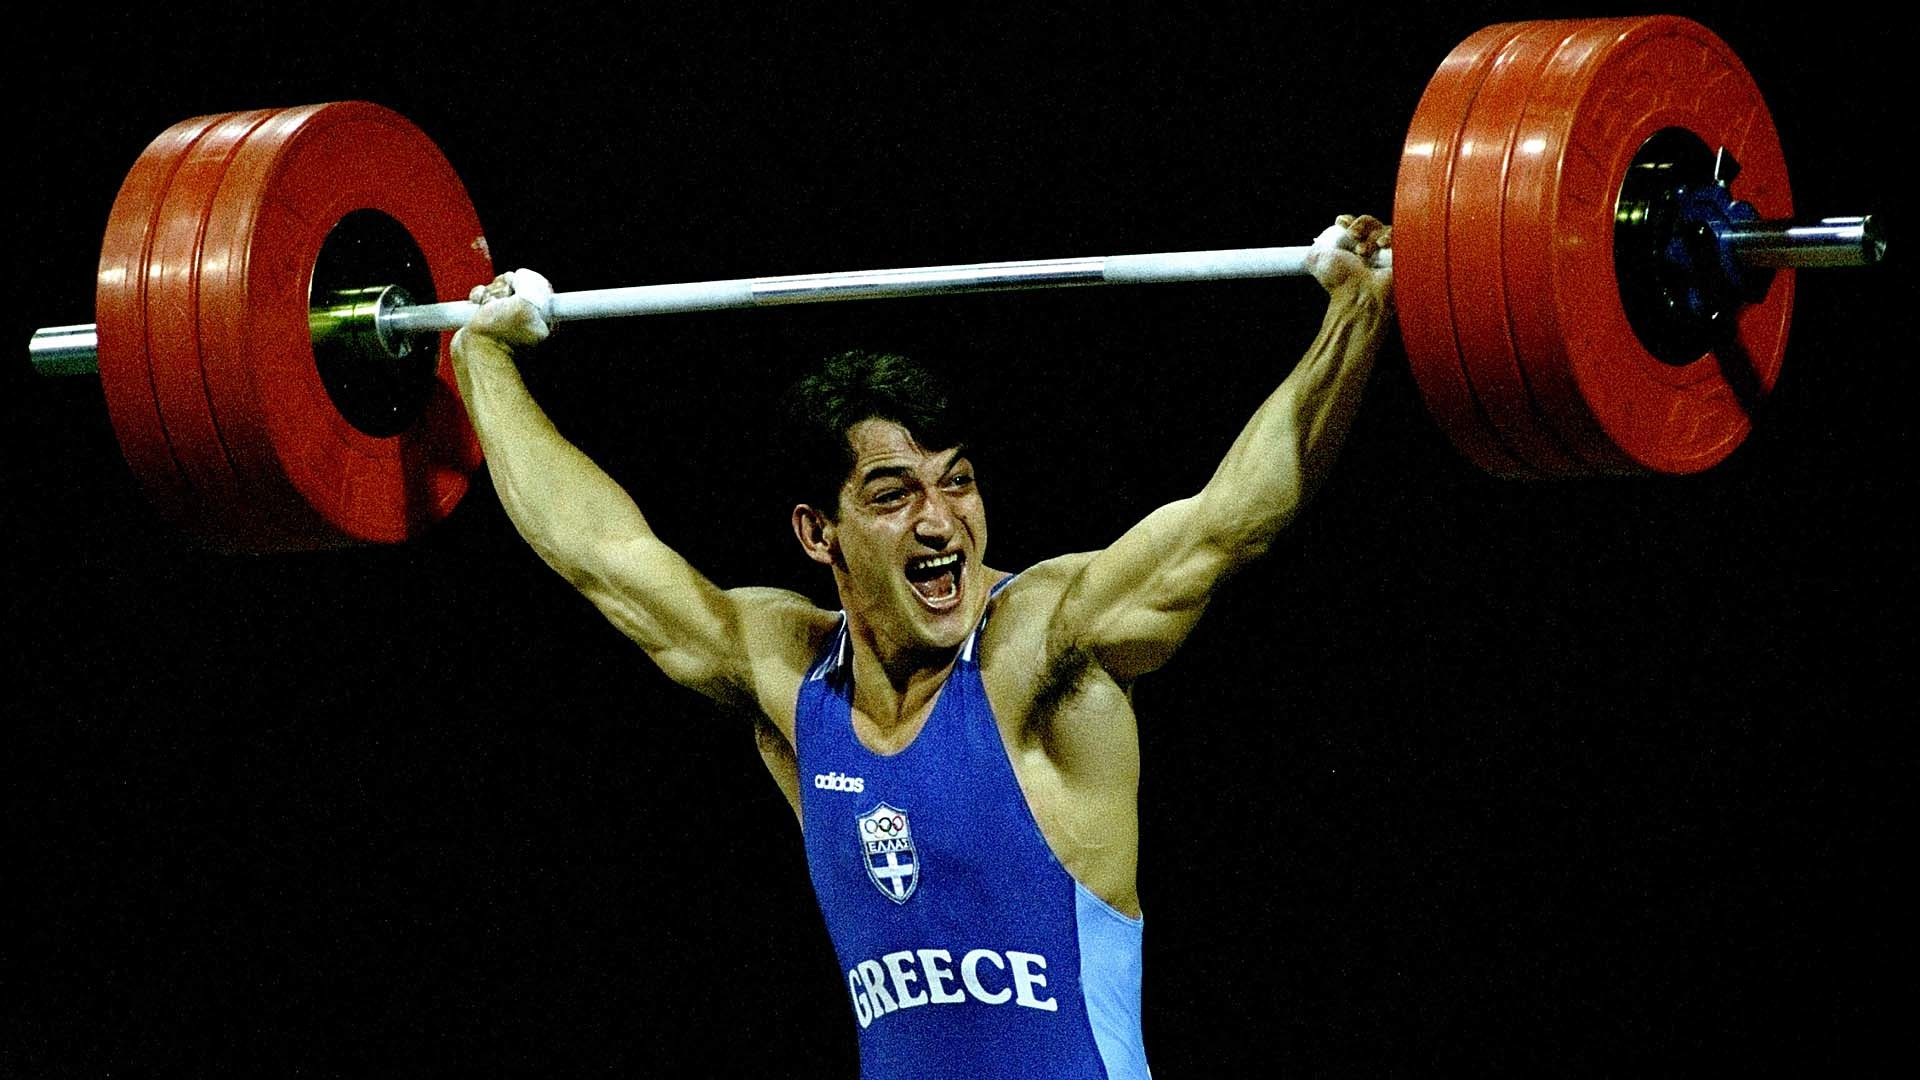 1920x1080 Gallery images and information: Olympic Weight Lifting Wallpaper